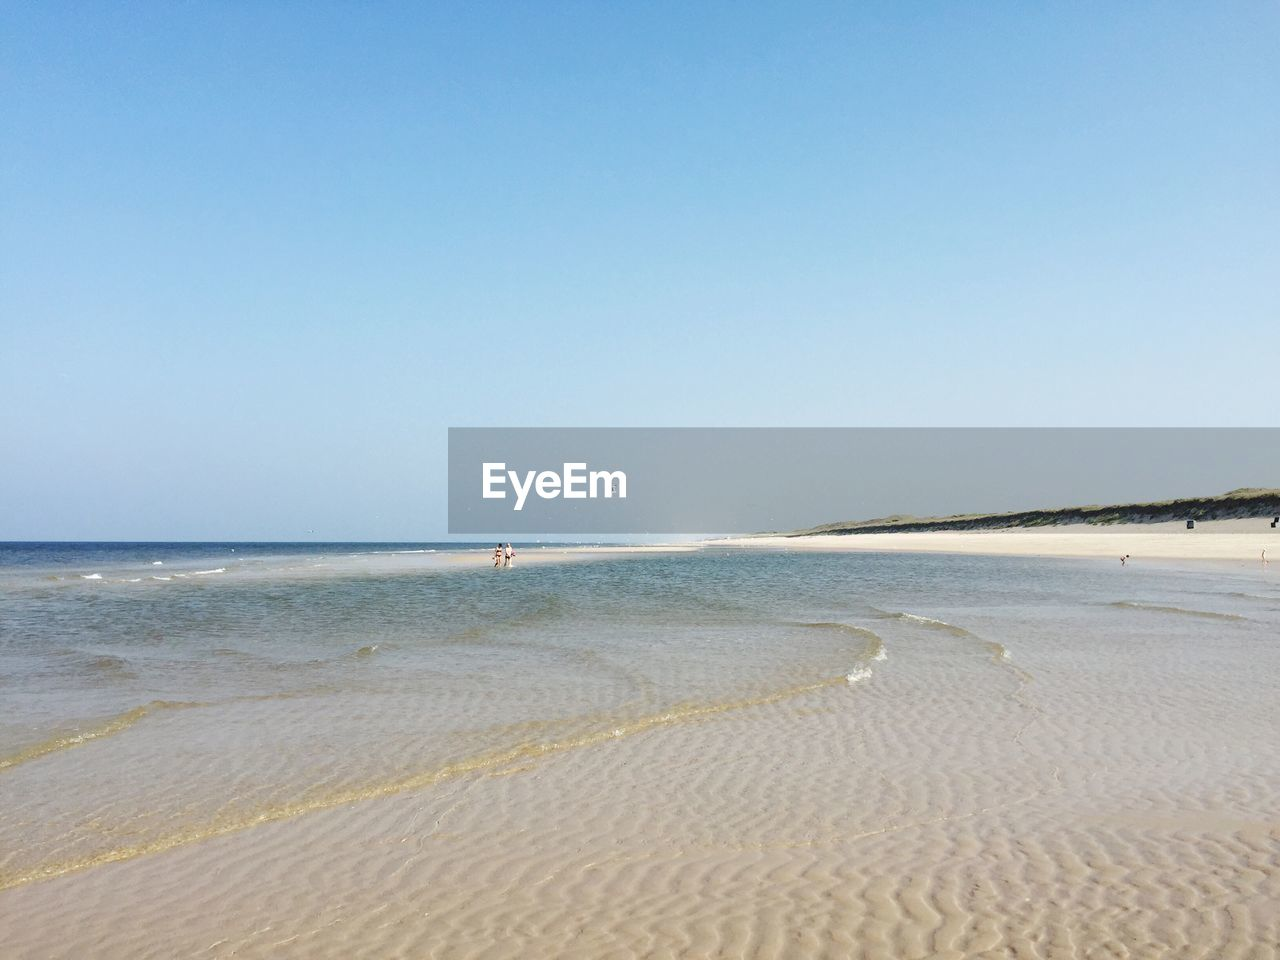 beach, sea, sand, water, nature, shore, tranquility, clear sky, beauty in nature, copy space, scenics, tranquil scene, horizon over water, outdoors, wave, summer, no people, blue, holiday, tide, day, sky